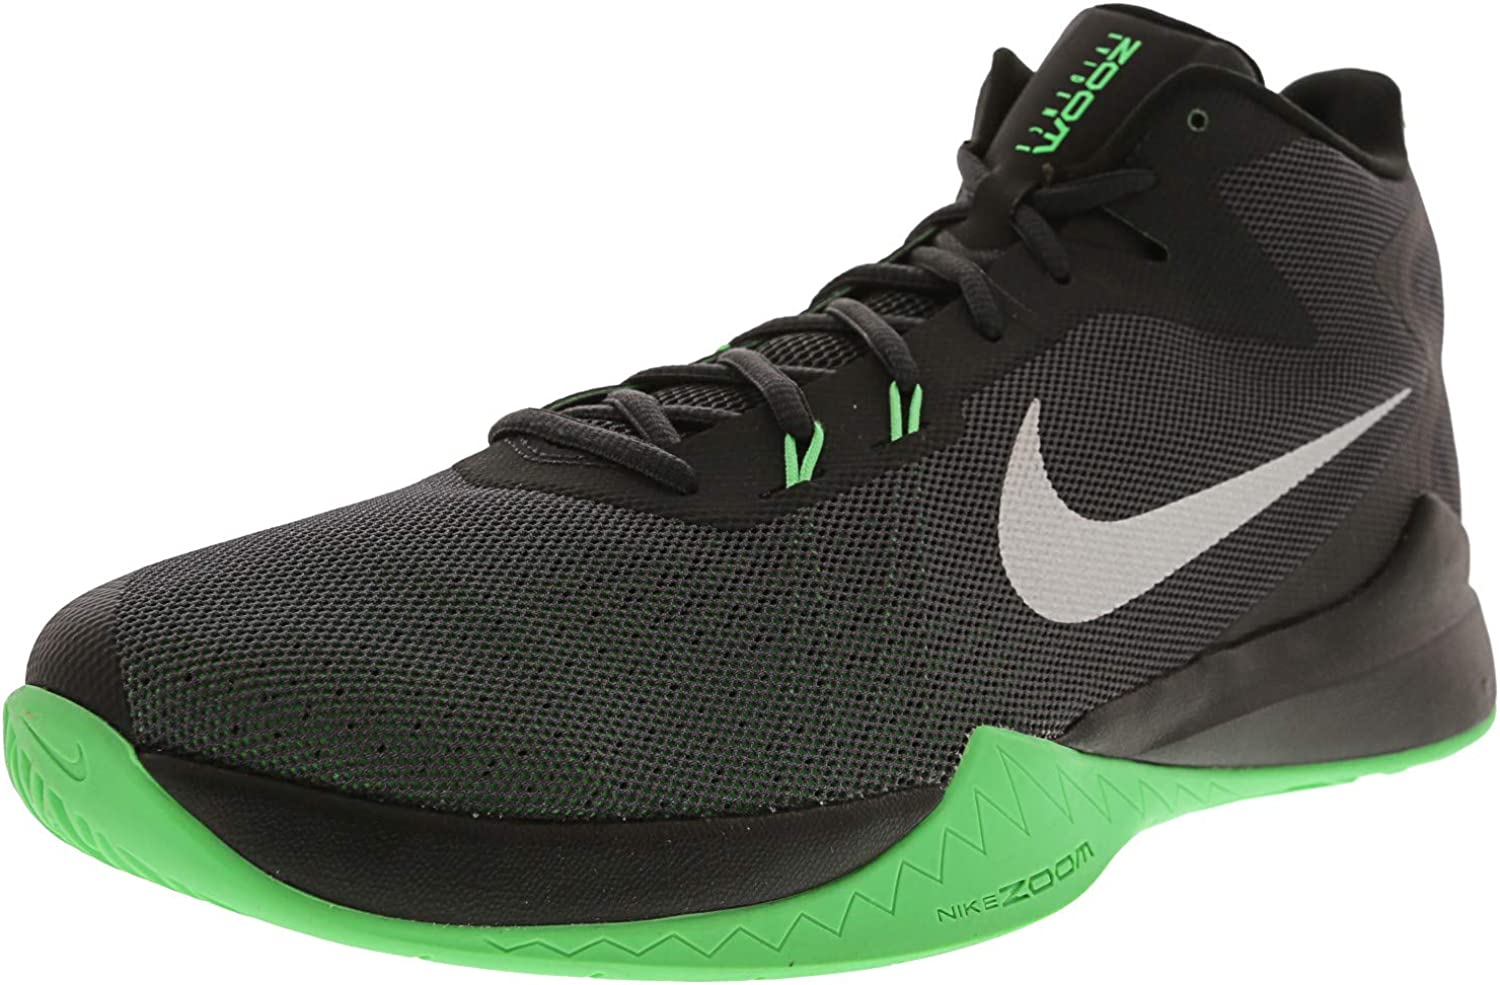 Nike Men's Zoom Evidence Basketball shoes, Anthracite Metallic Silver Black, 11.5 D US